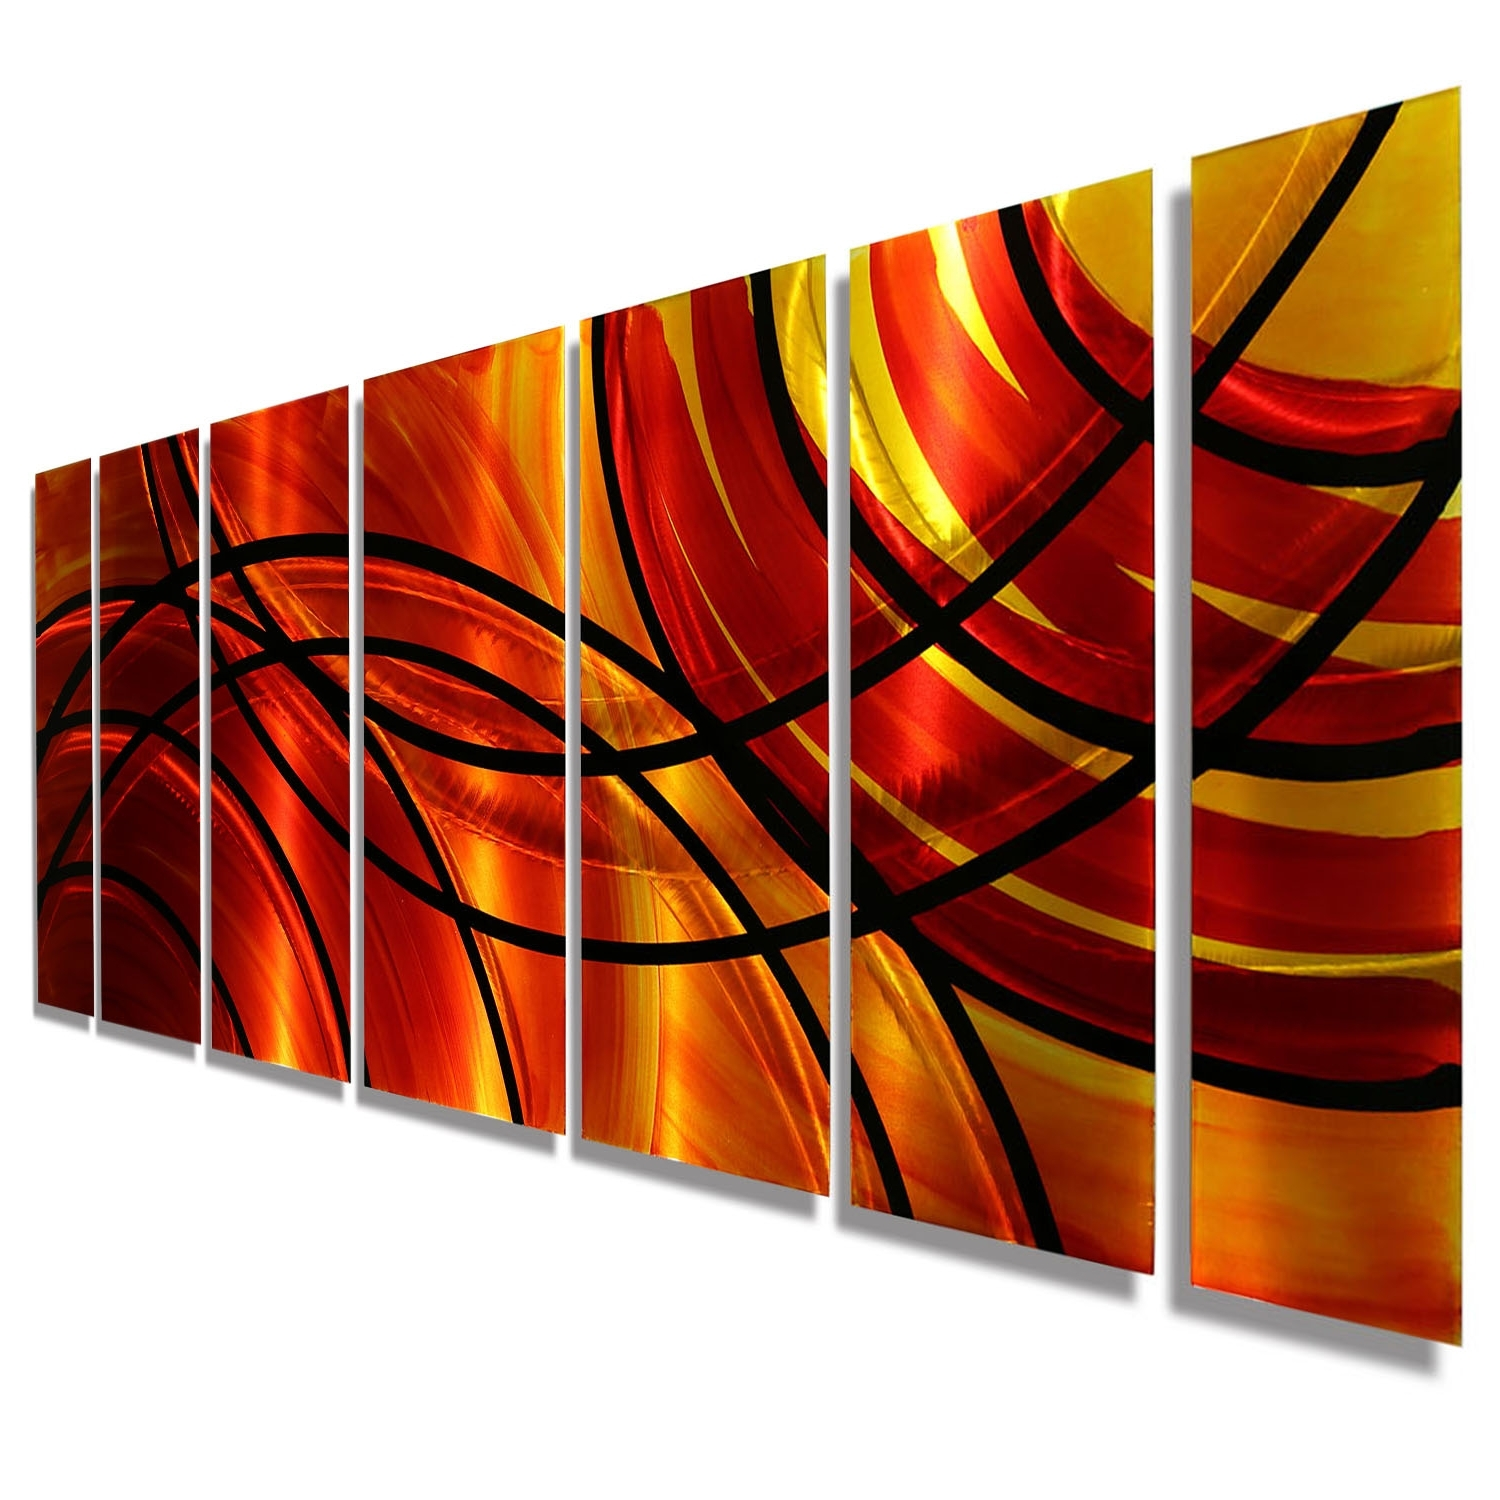 Boundfire – Red & Orange Modern Metal Wall Artjon Allen With Regard To Latest Abstract Metal Wall Art Panels (Gallery 14 of 15)